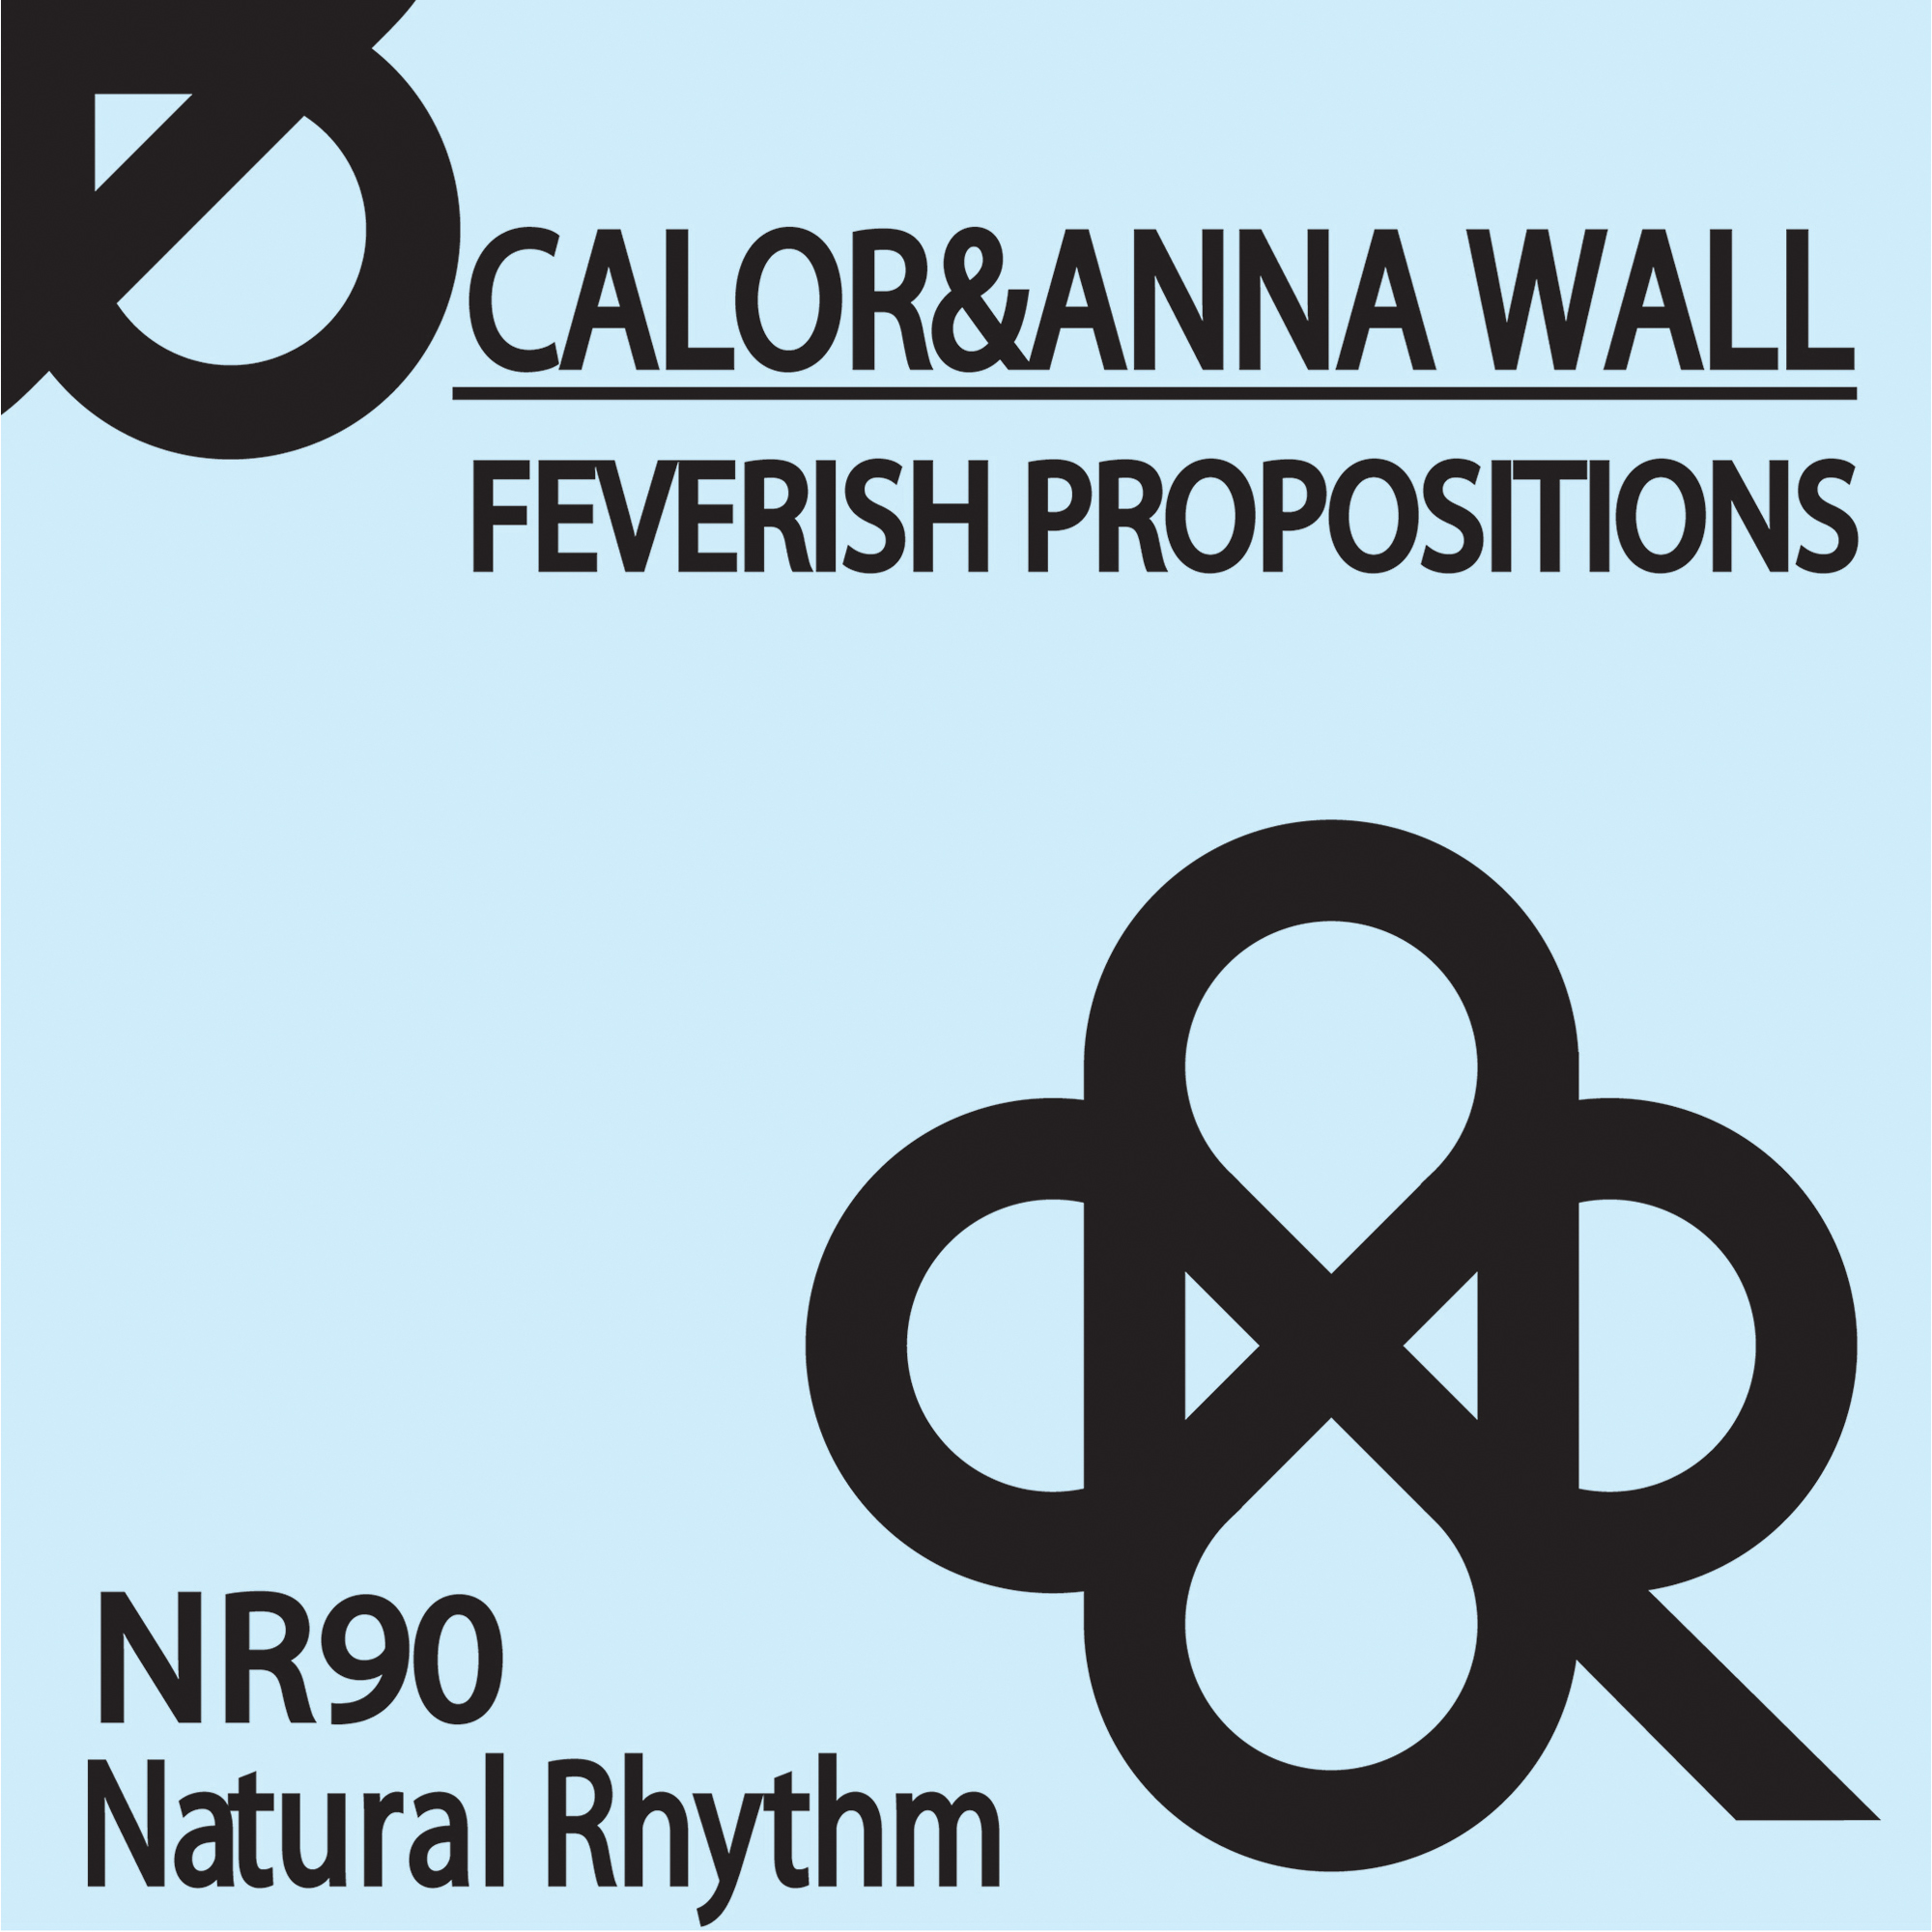 Calor & Anna Wall – Feverish Propositions